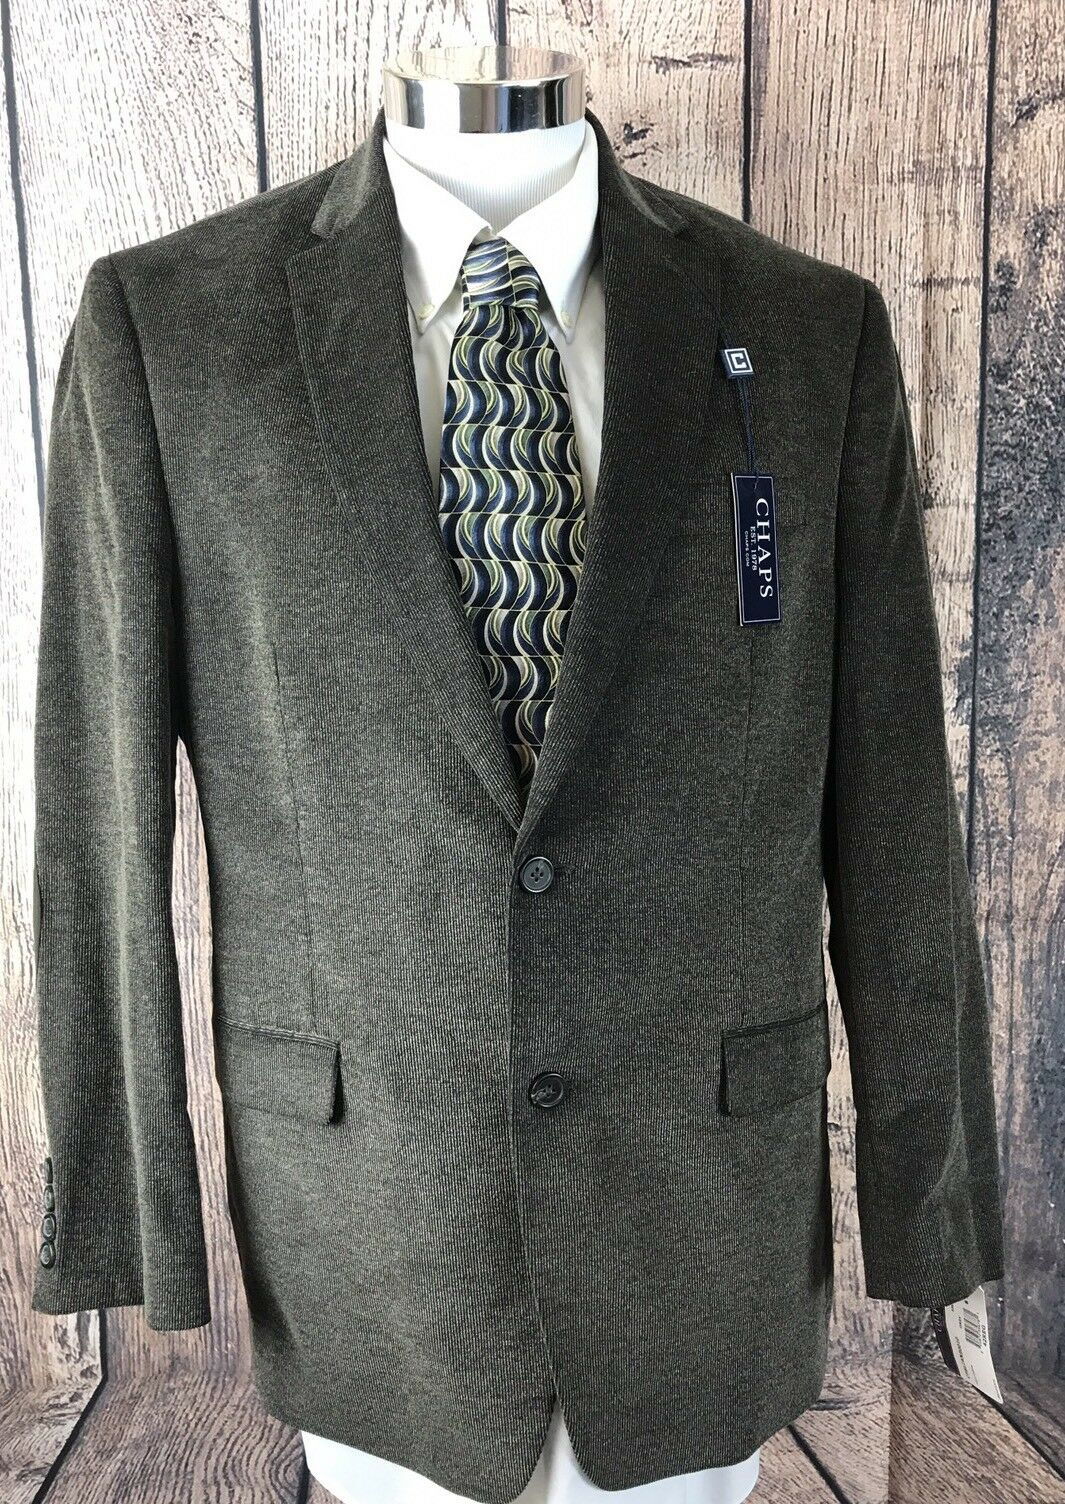 NEW NWT Chaps Ralph Lauren Mens Cotton Corduroy Coat Blazer 2 Btn 42R MSRP